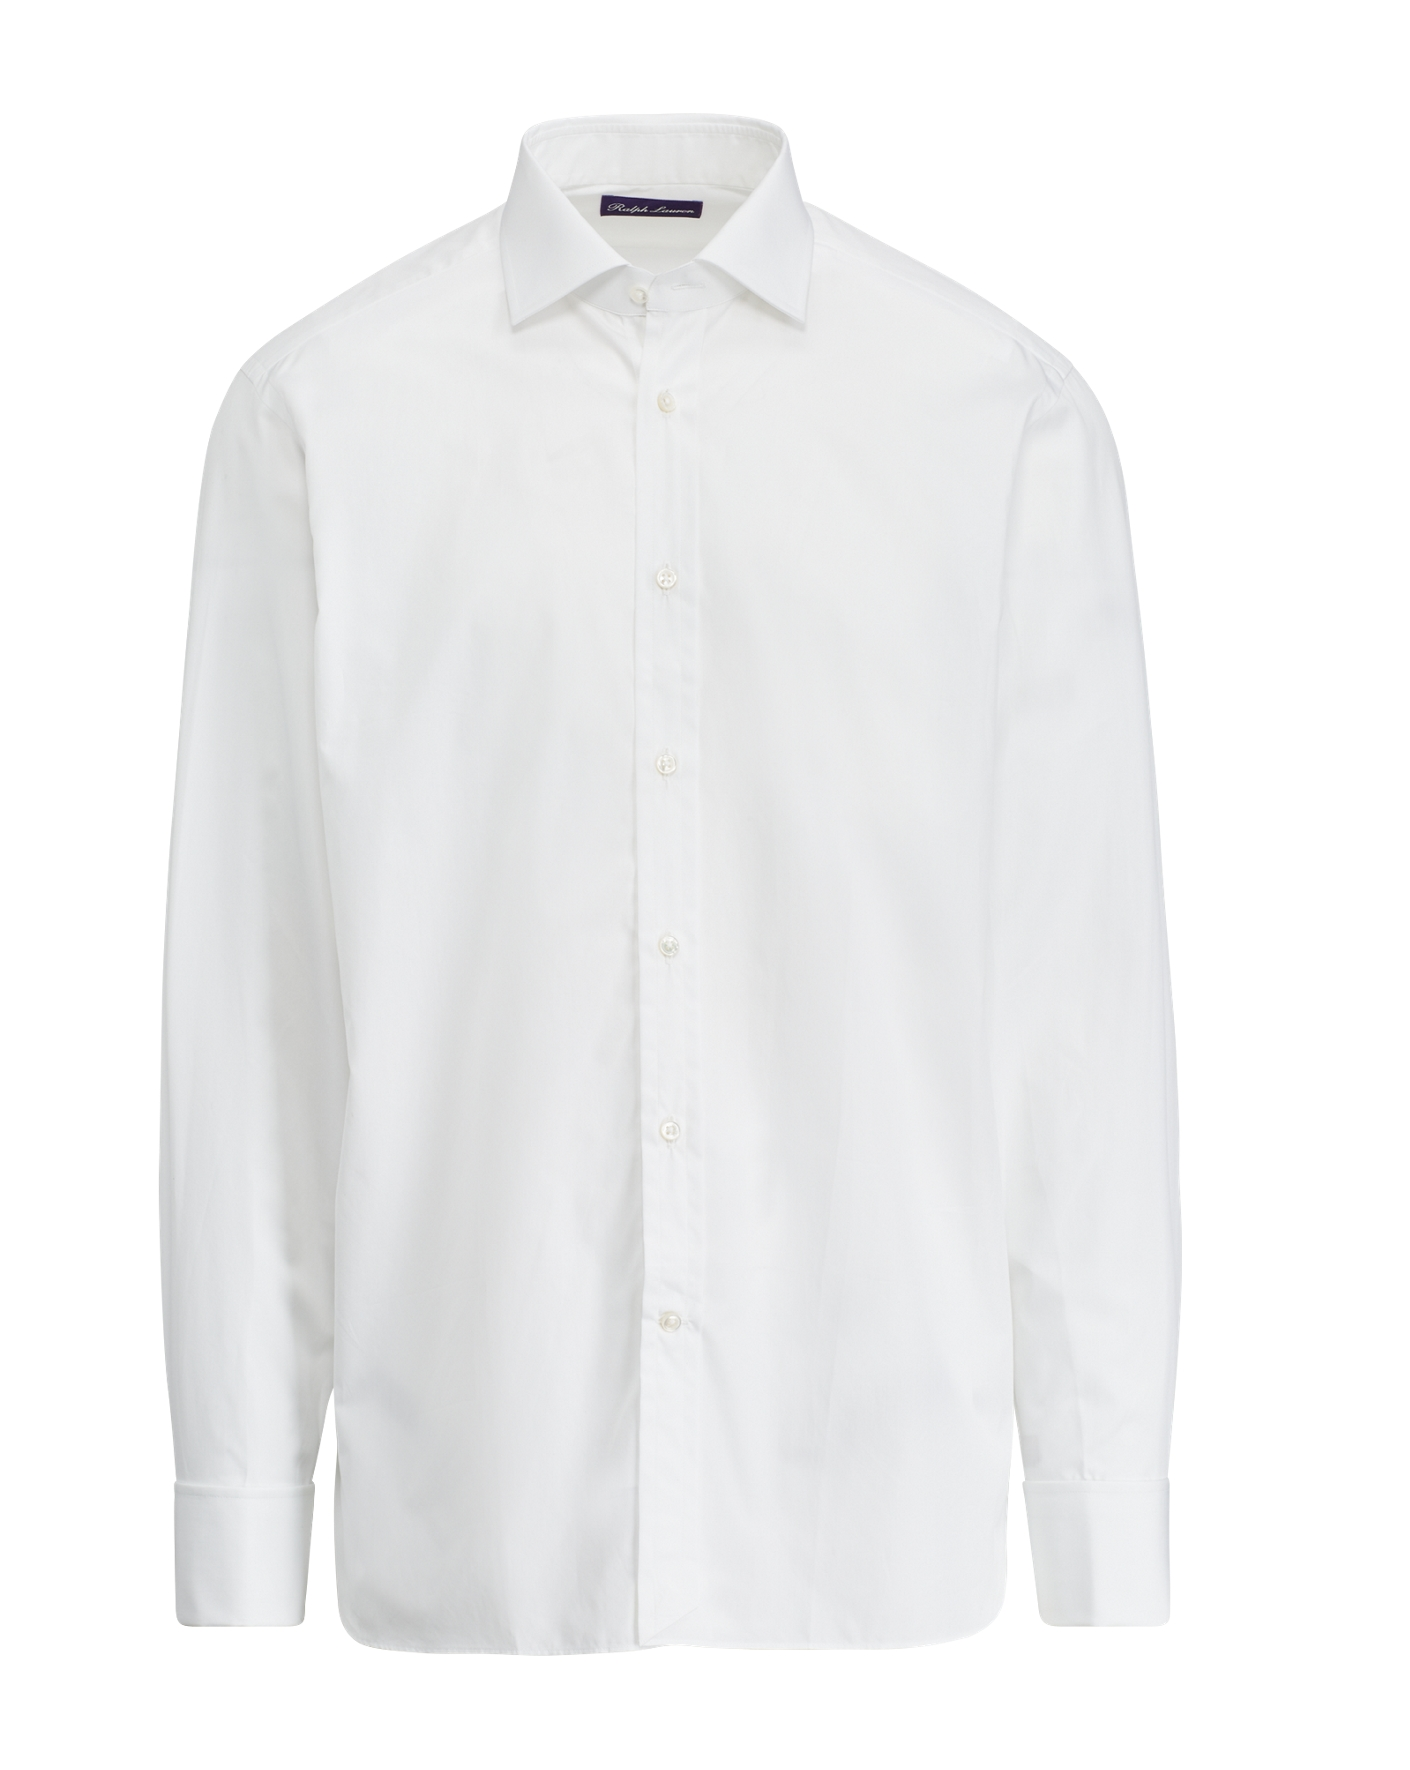 white dress shirt custom shirt